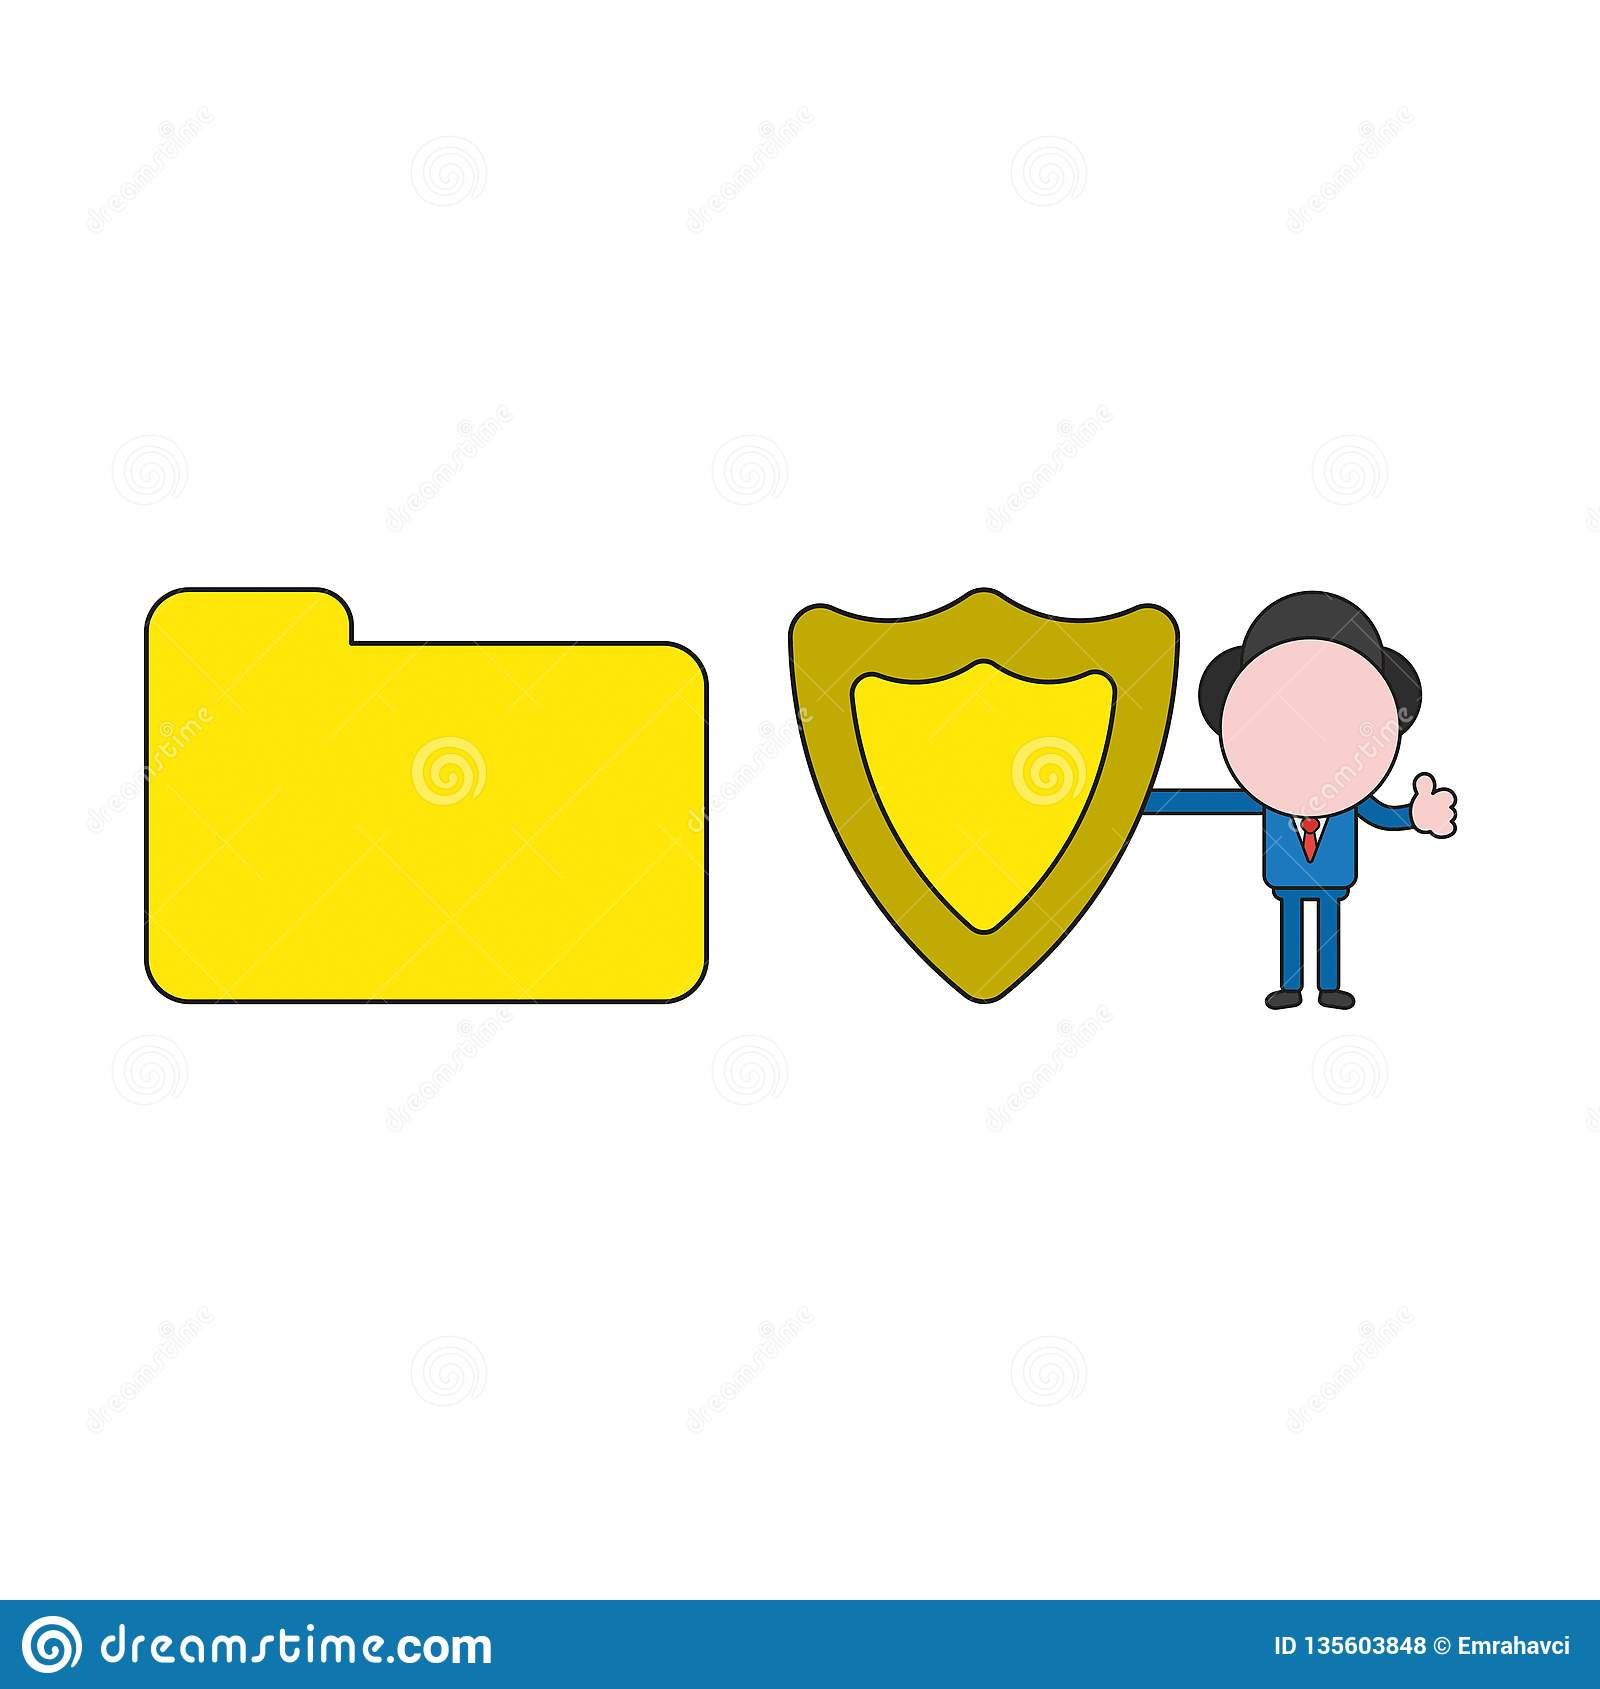 Vector illustration of businessman character with closed file folder, holding guard shield and giving thumbs-up. Color and black